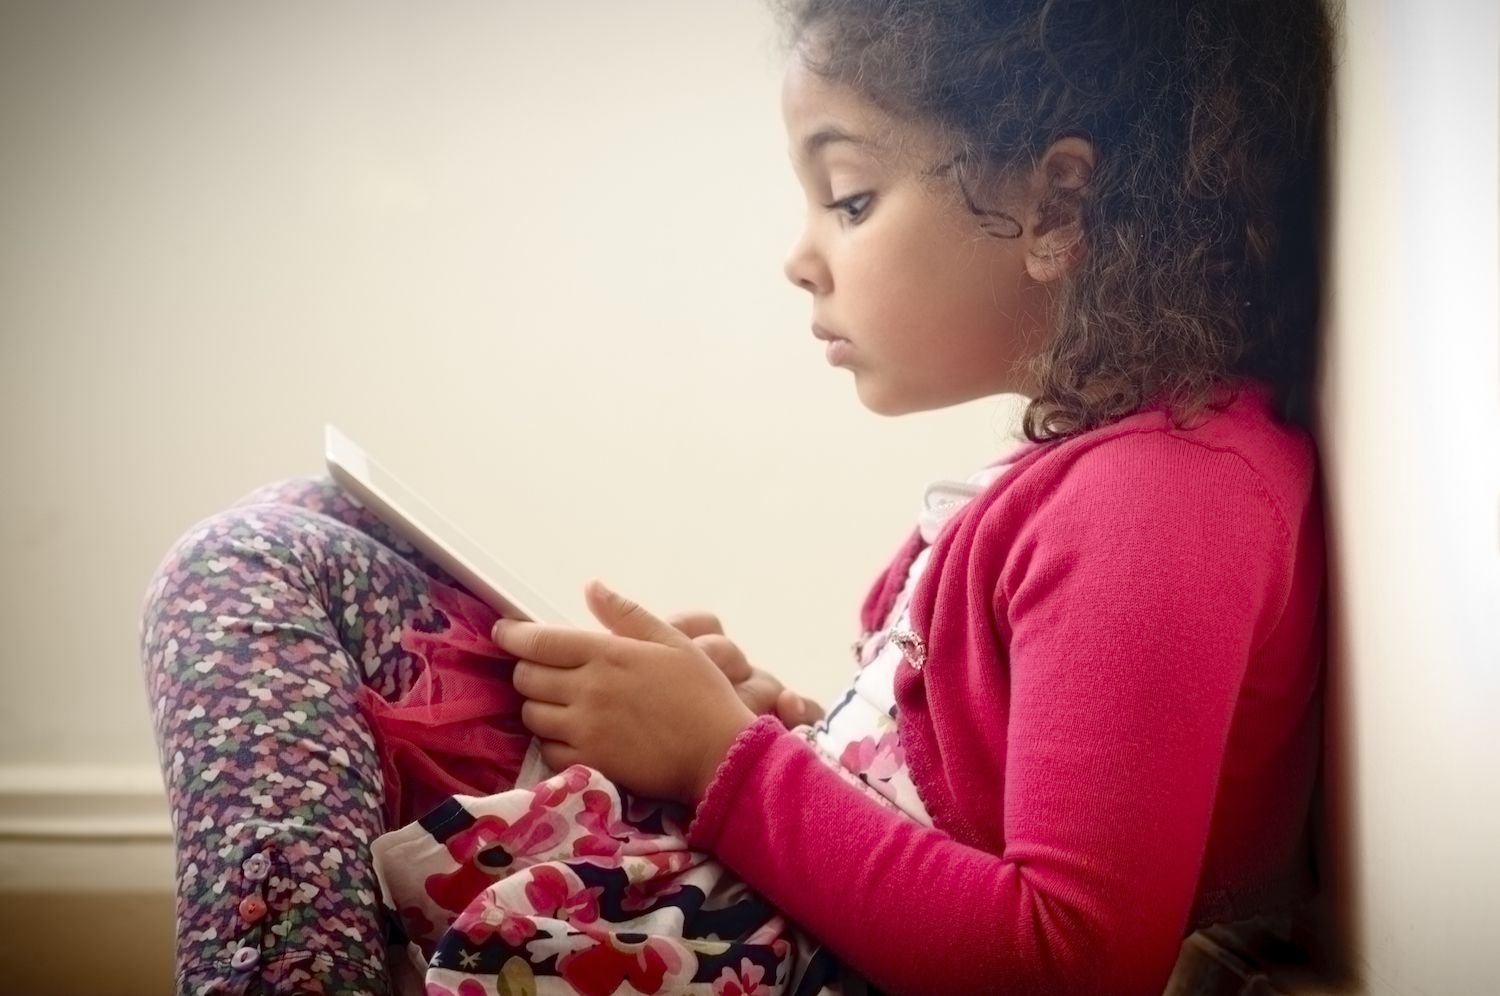 Child Reading on Digital Graphic Tablet